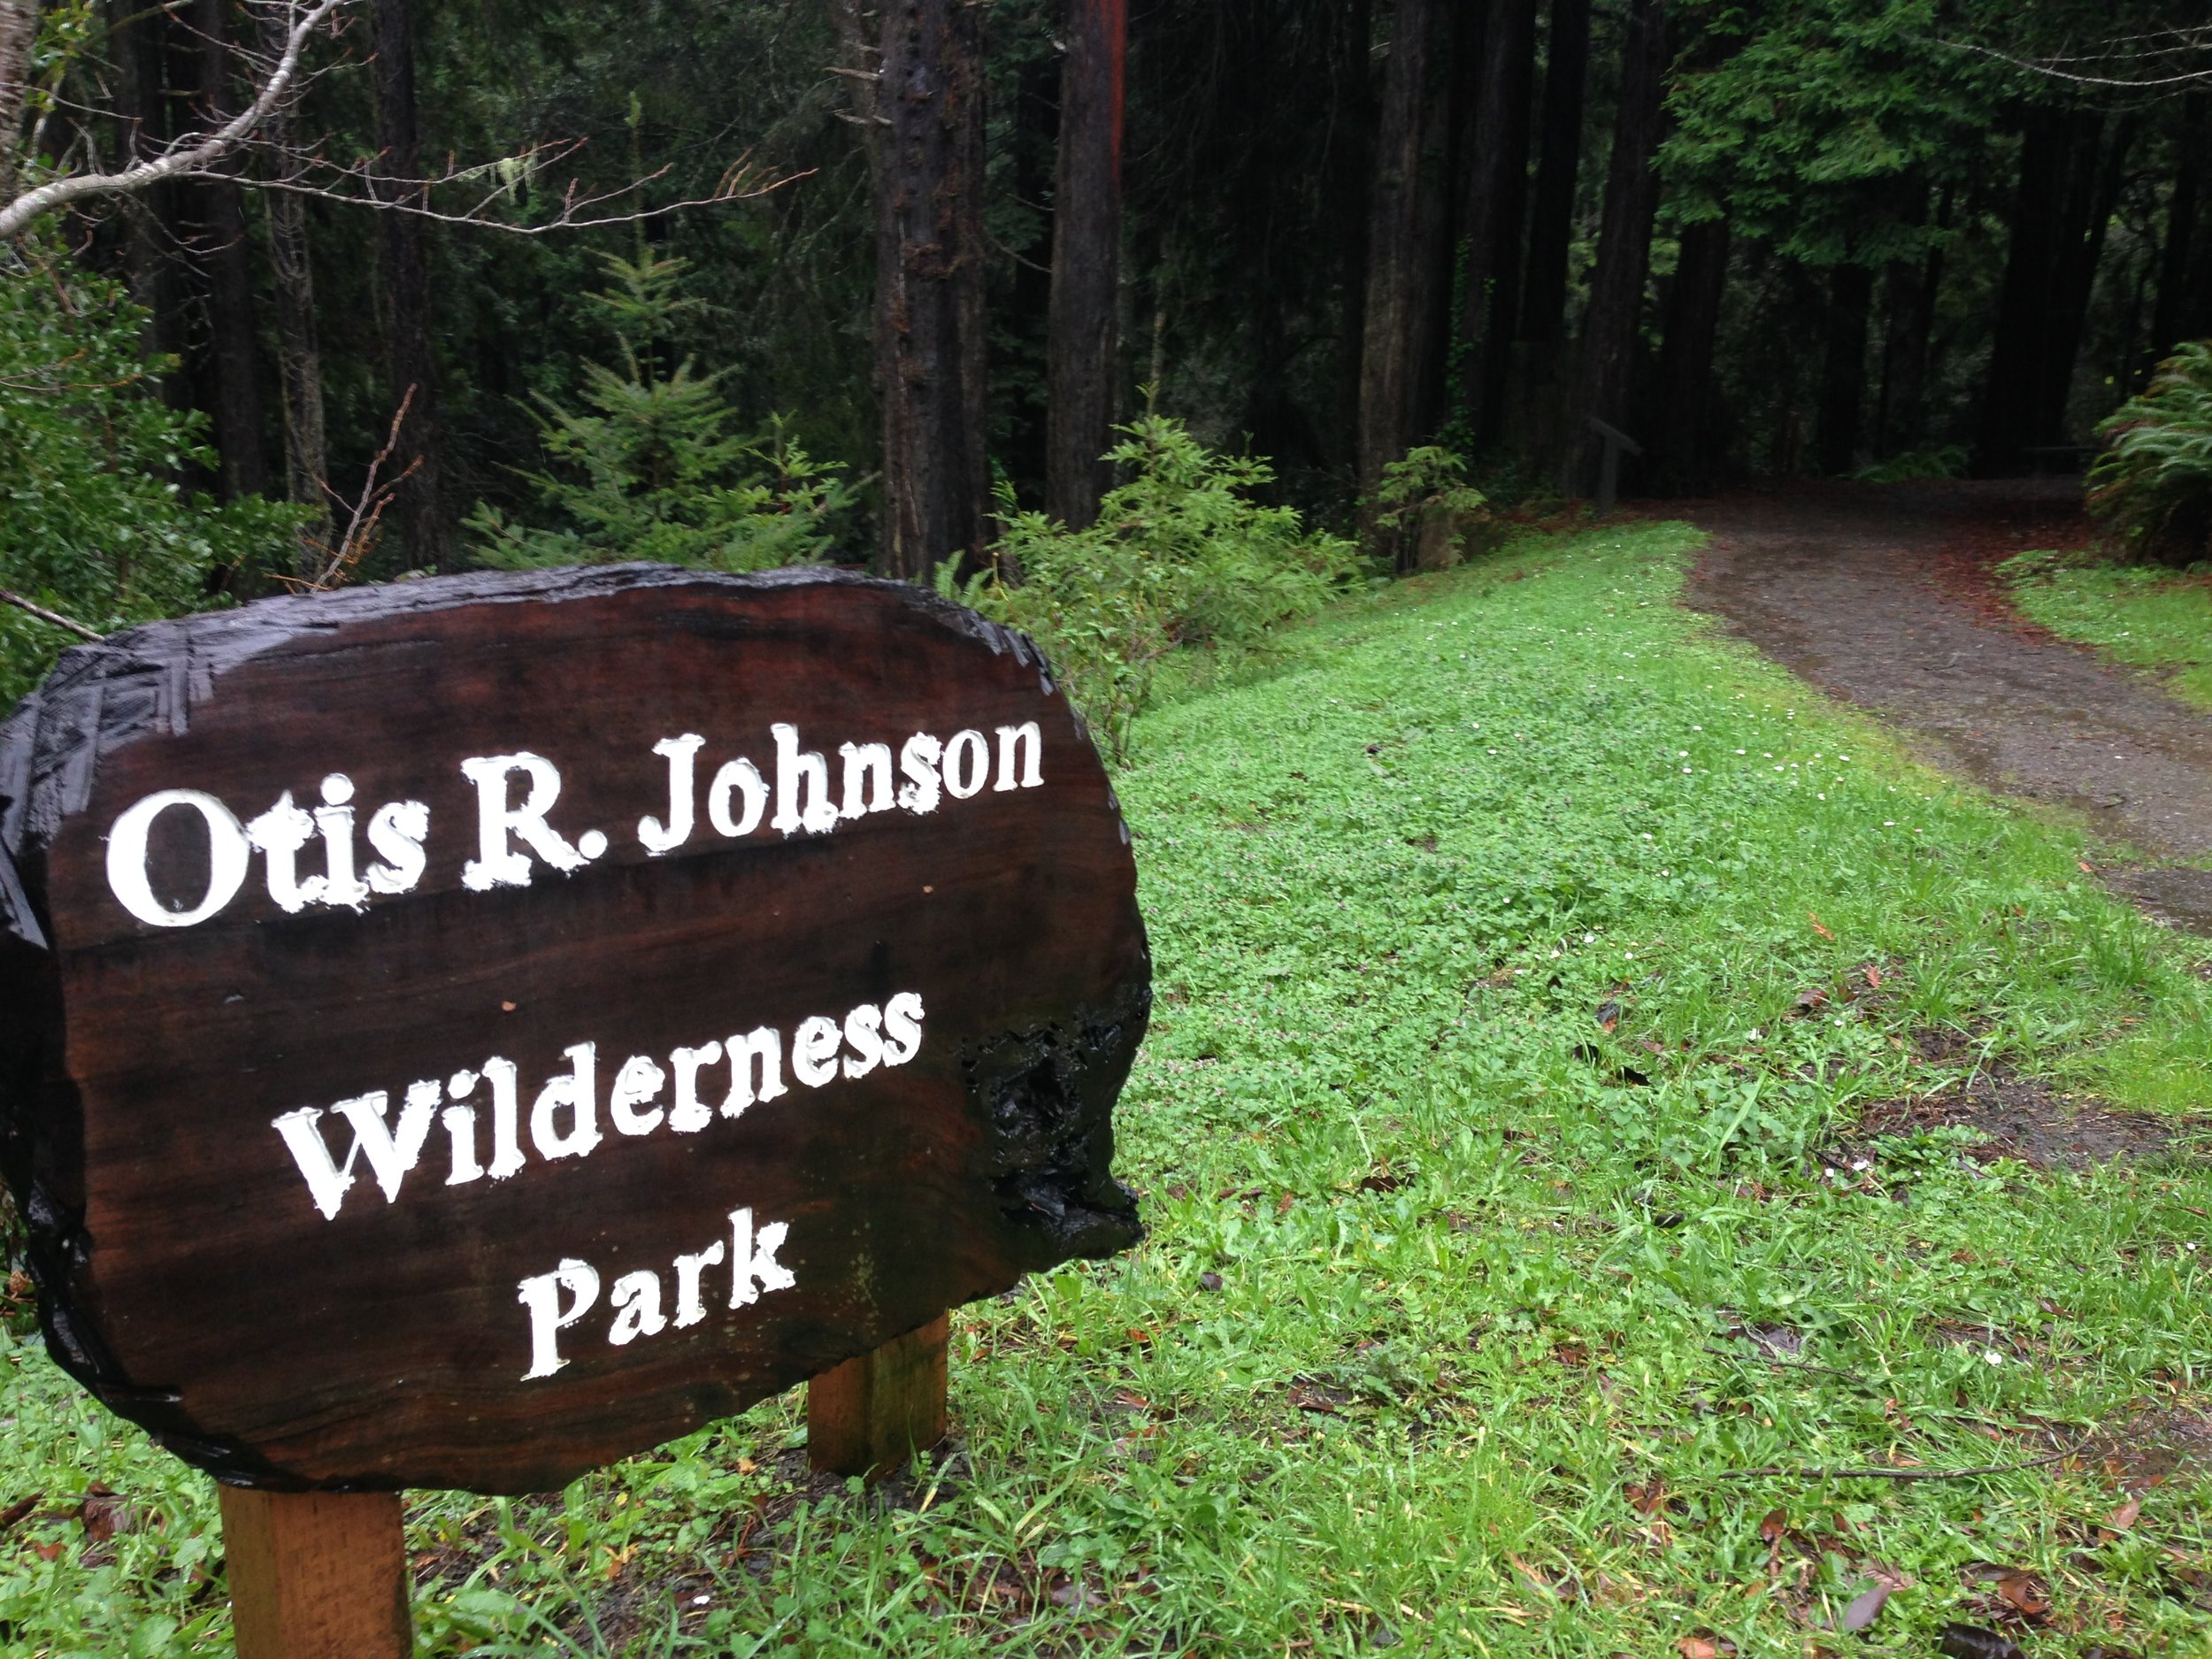 Otis Johnson Park has a Redwood Forest that is walking distance from downtown Fort Bragg.